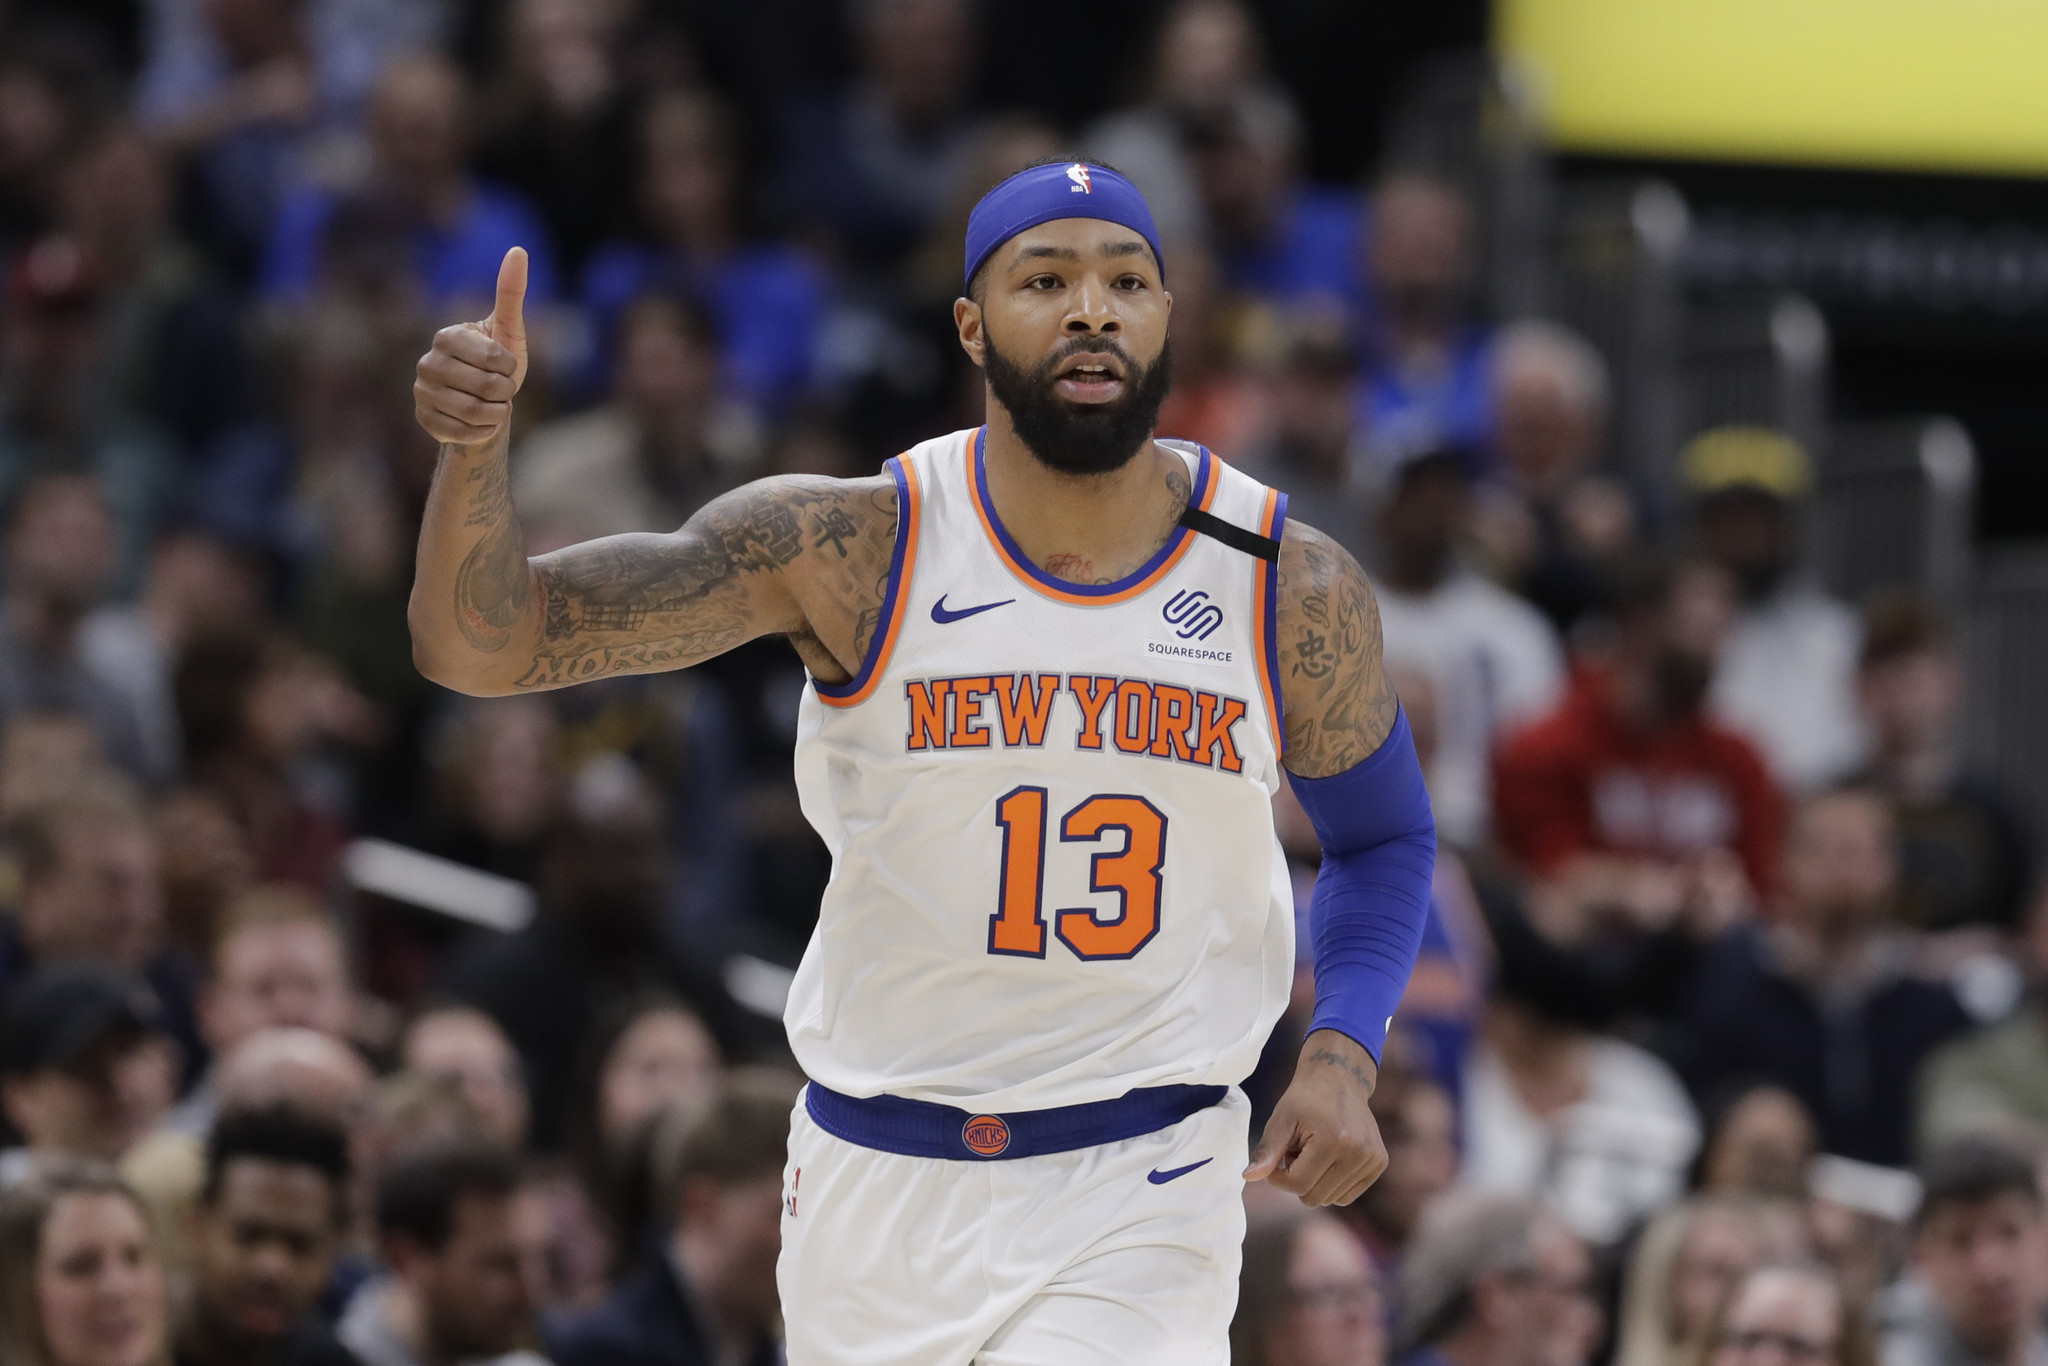 Knicks trade Marcus Morris to Clippers for Moe Harkless, first-round pick